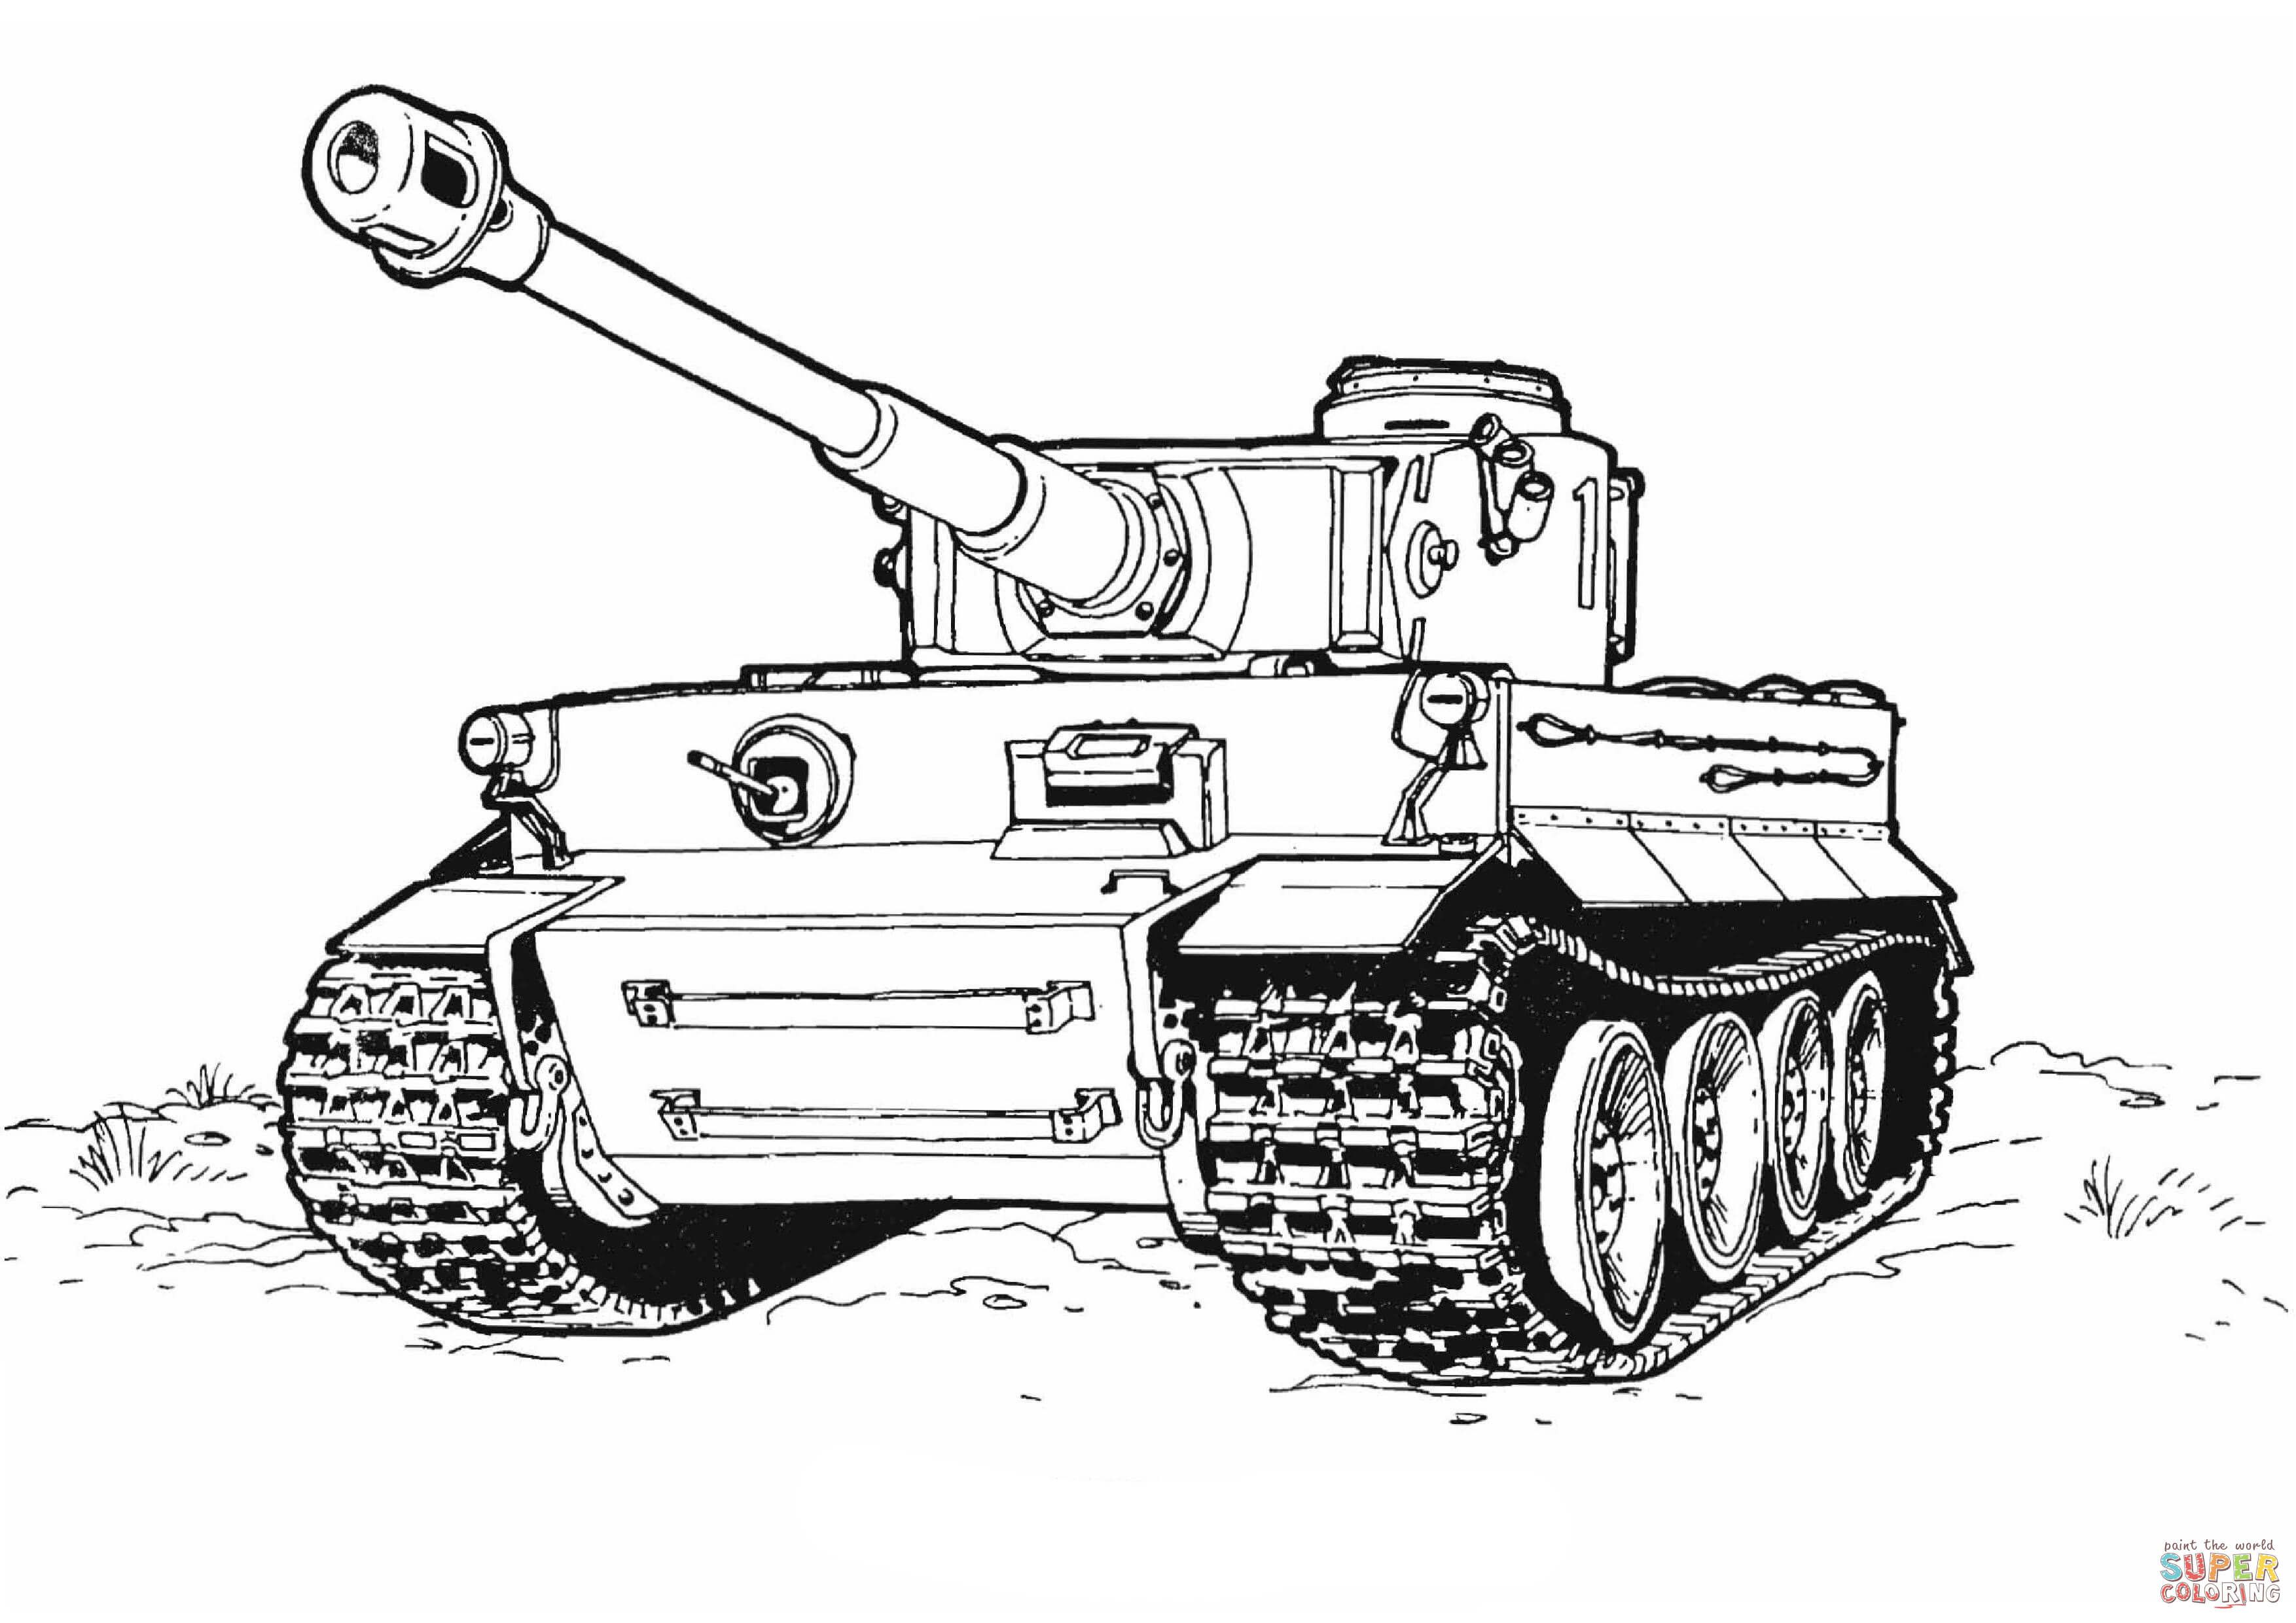 Tiger Tank Coloring Page From Tanks Category Select From 27260 Printable Crafts Of Cartoons Nature Animals Bib Tank Drawing Truck Coloring Pages Tiger Tank